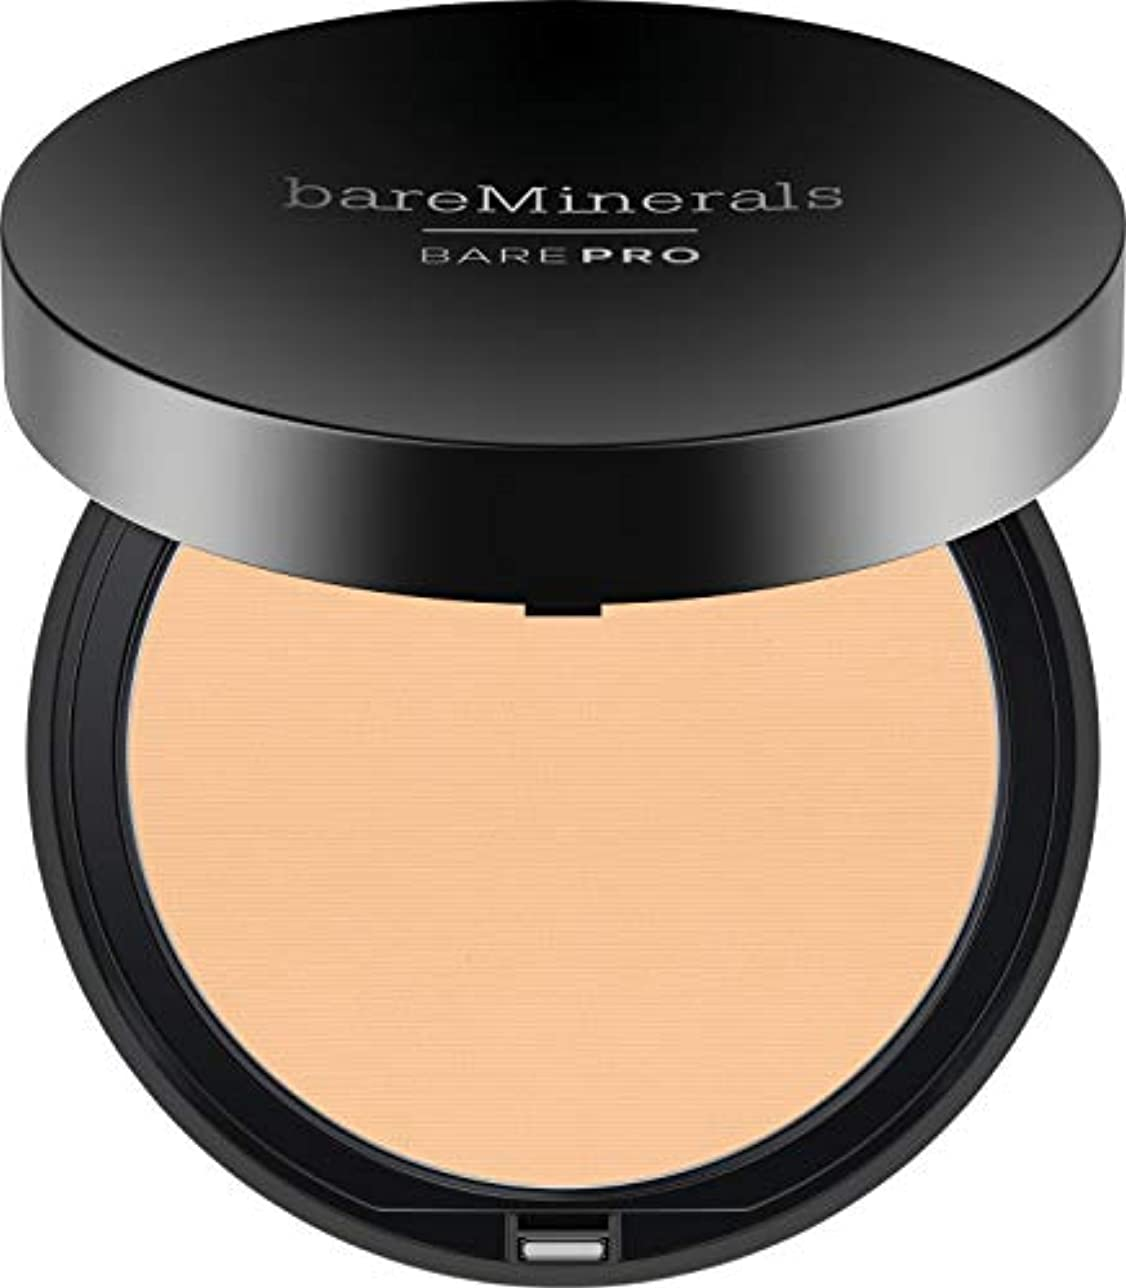 医薬偏見推定ベアミネラル BarePro Performance Wear Powder Foundation - # 07 Warm Light 10g/0.34oz並行輸入品